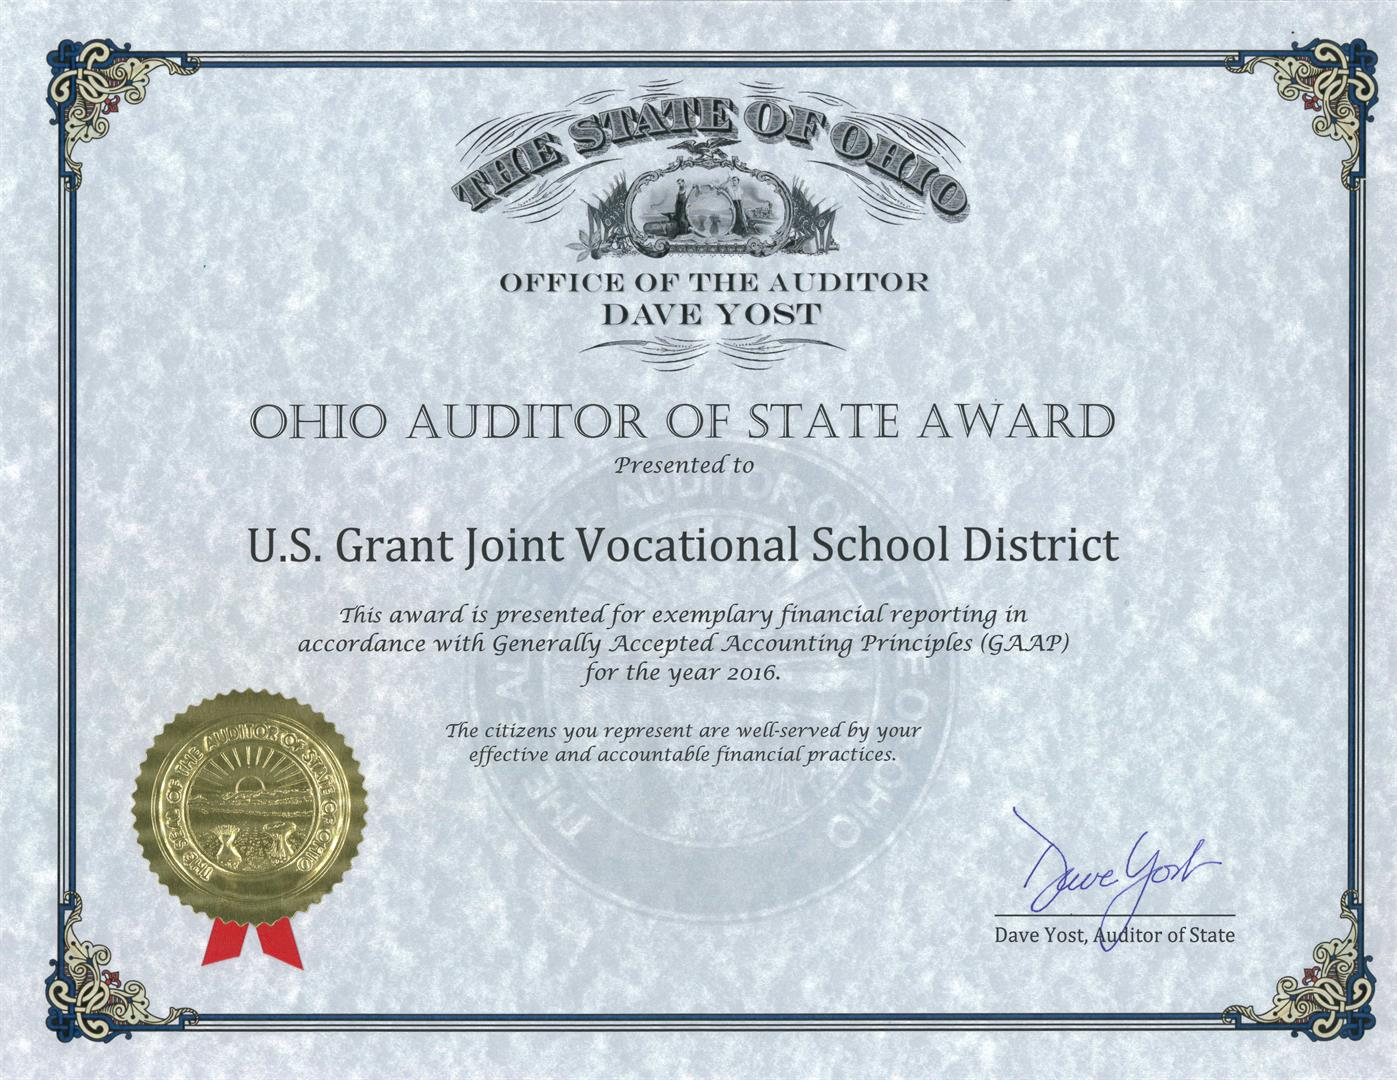 An image of the Ohio Auditor of State Award presented to U.S. Grant Joint Vocational School District.